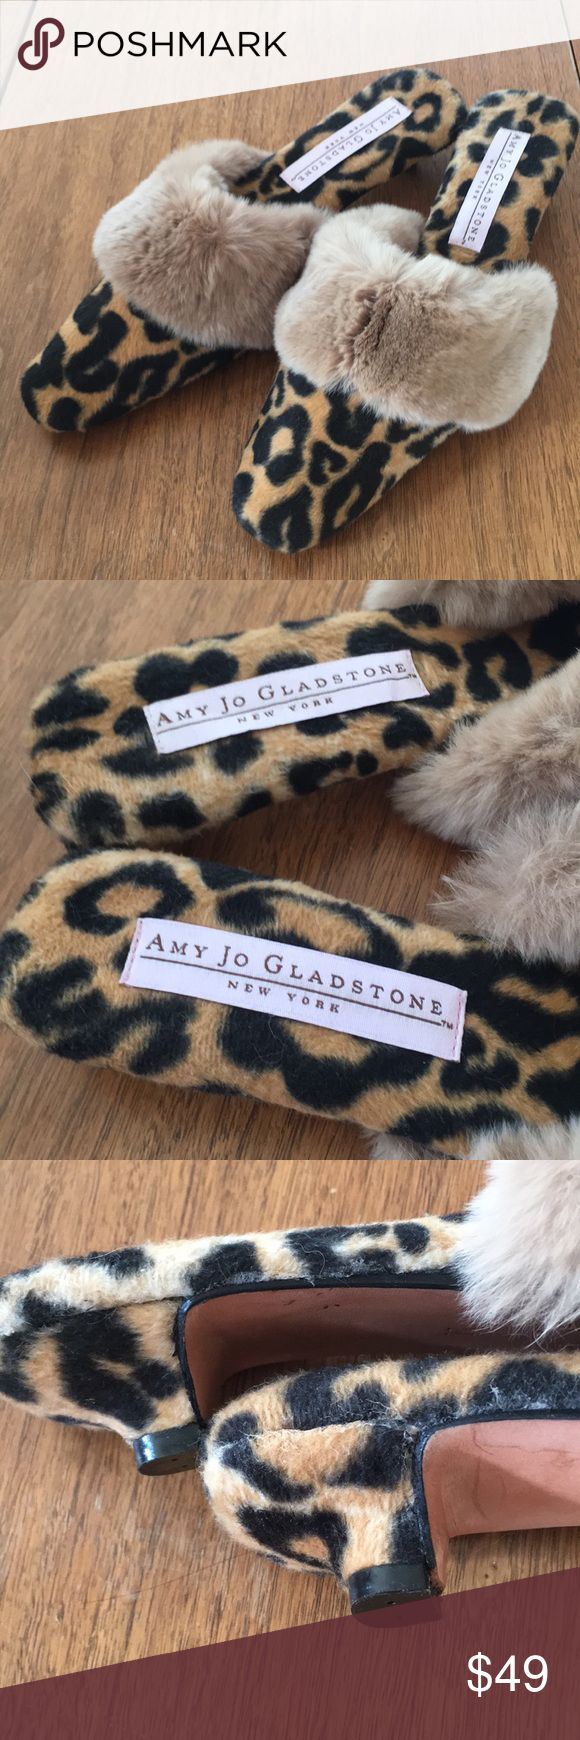 Amy Jo Gladstone New York slippers/shoes I have loved these slippers for so many years and I only worn them a once in the house.  They are a size Medium and ideal for a narrow foot.   I'm a size 7 1/2 and there is about an inch behind my heel when I have them on.  Very unique and classic, I've never seen another pair like them! Amy Jo Gladstone New York Shoes Slippers